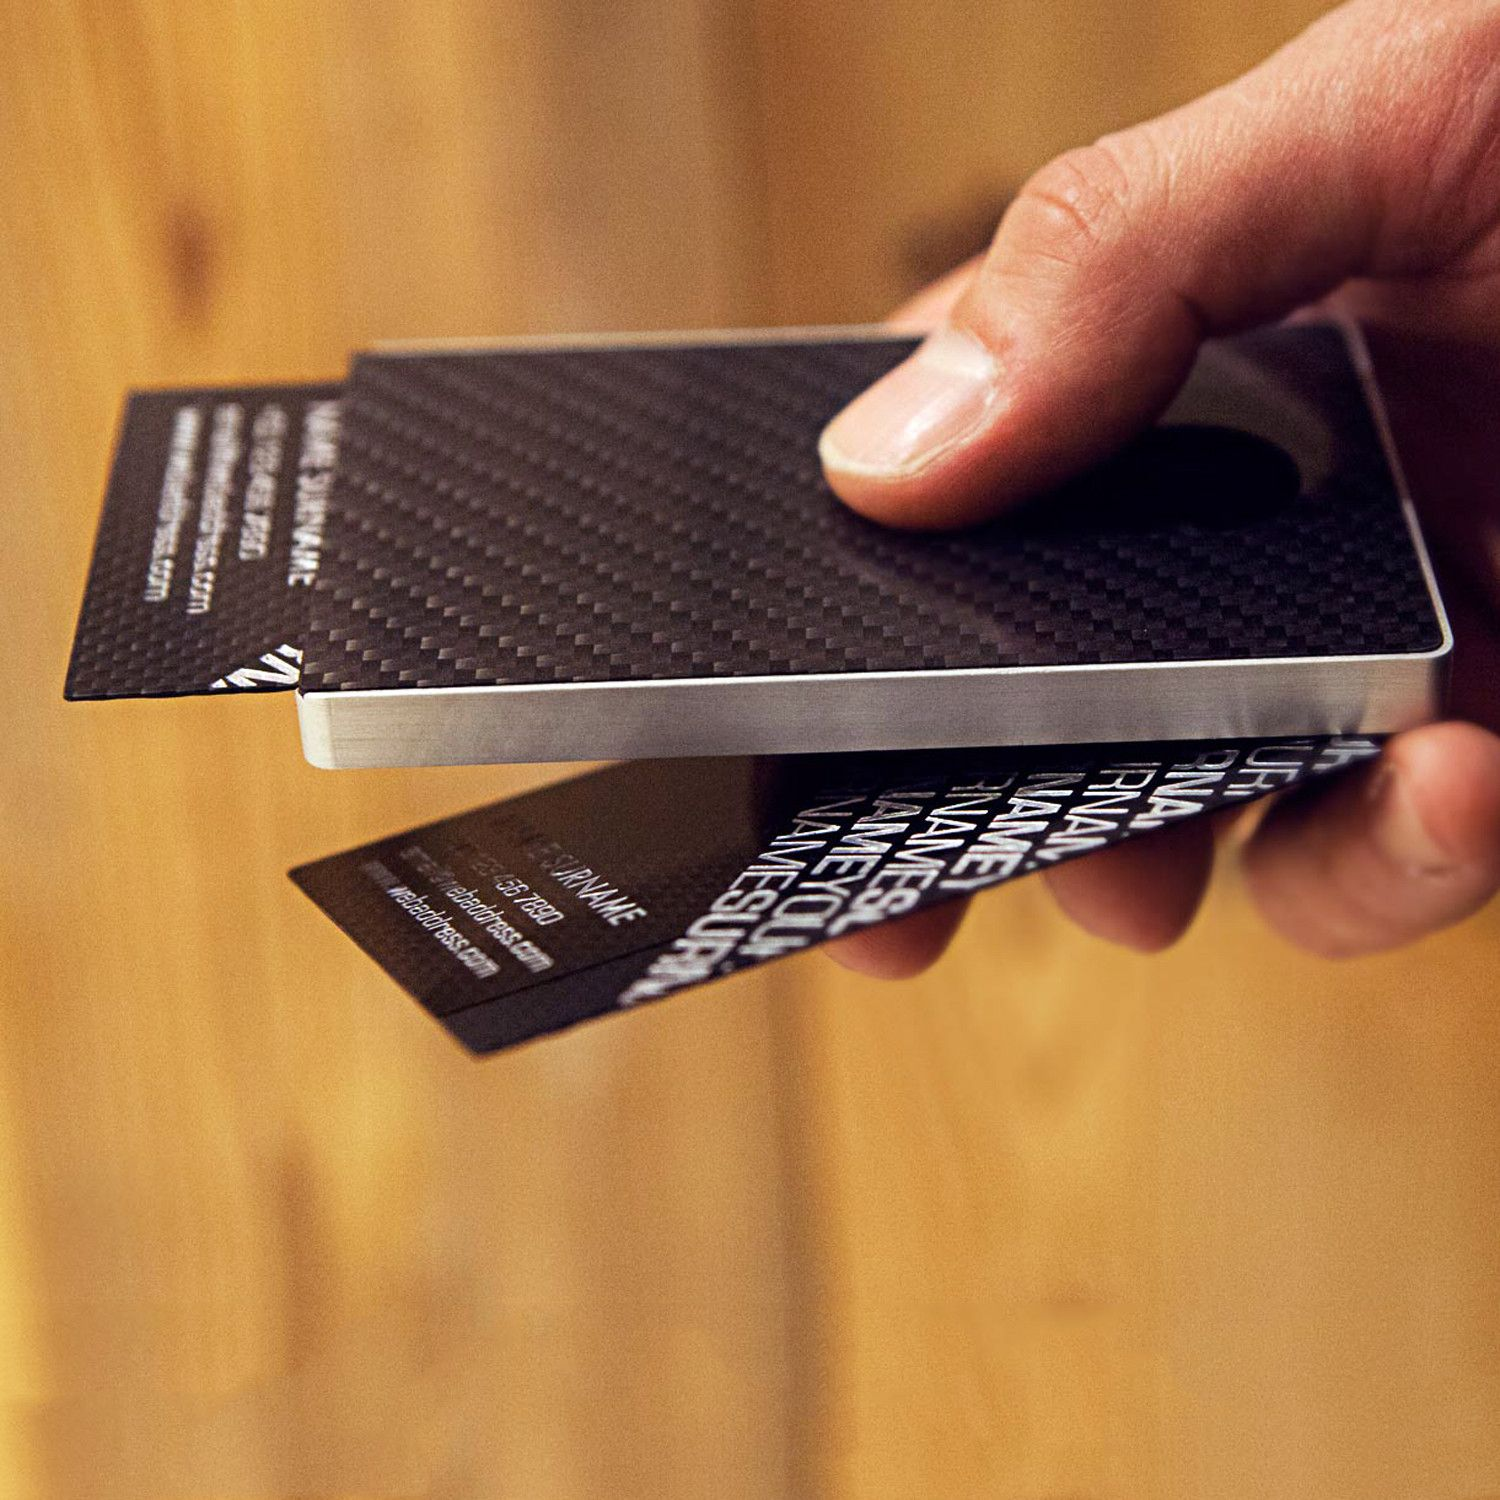 Carbon fiber business card holder from cardissimos the design carbon fiber business card holder from cardissimos the design allows you to take out a magicingreecefo Gallery